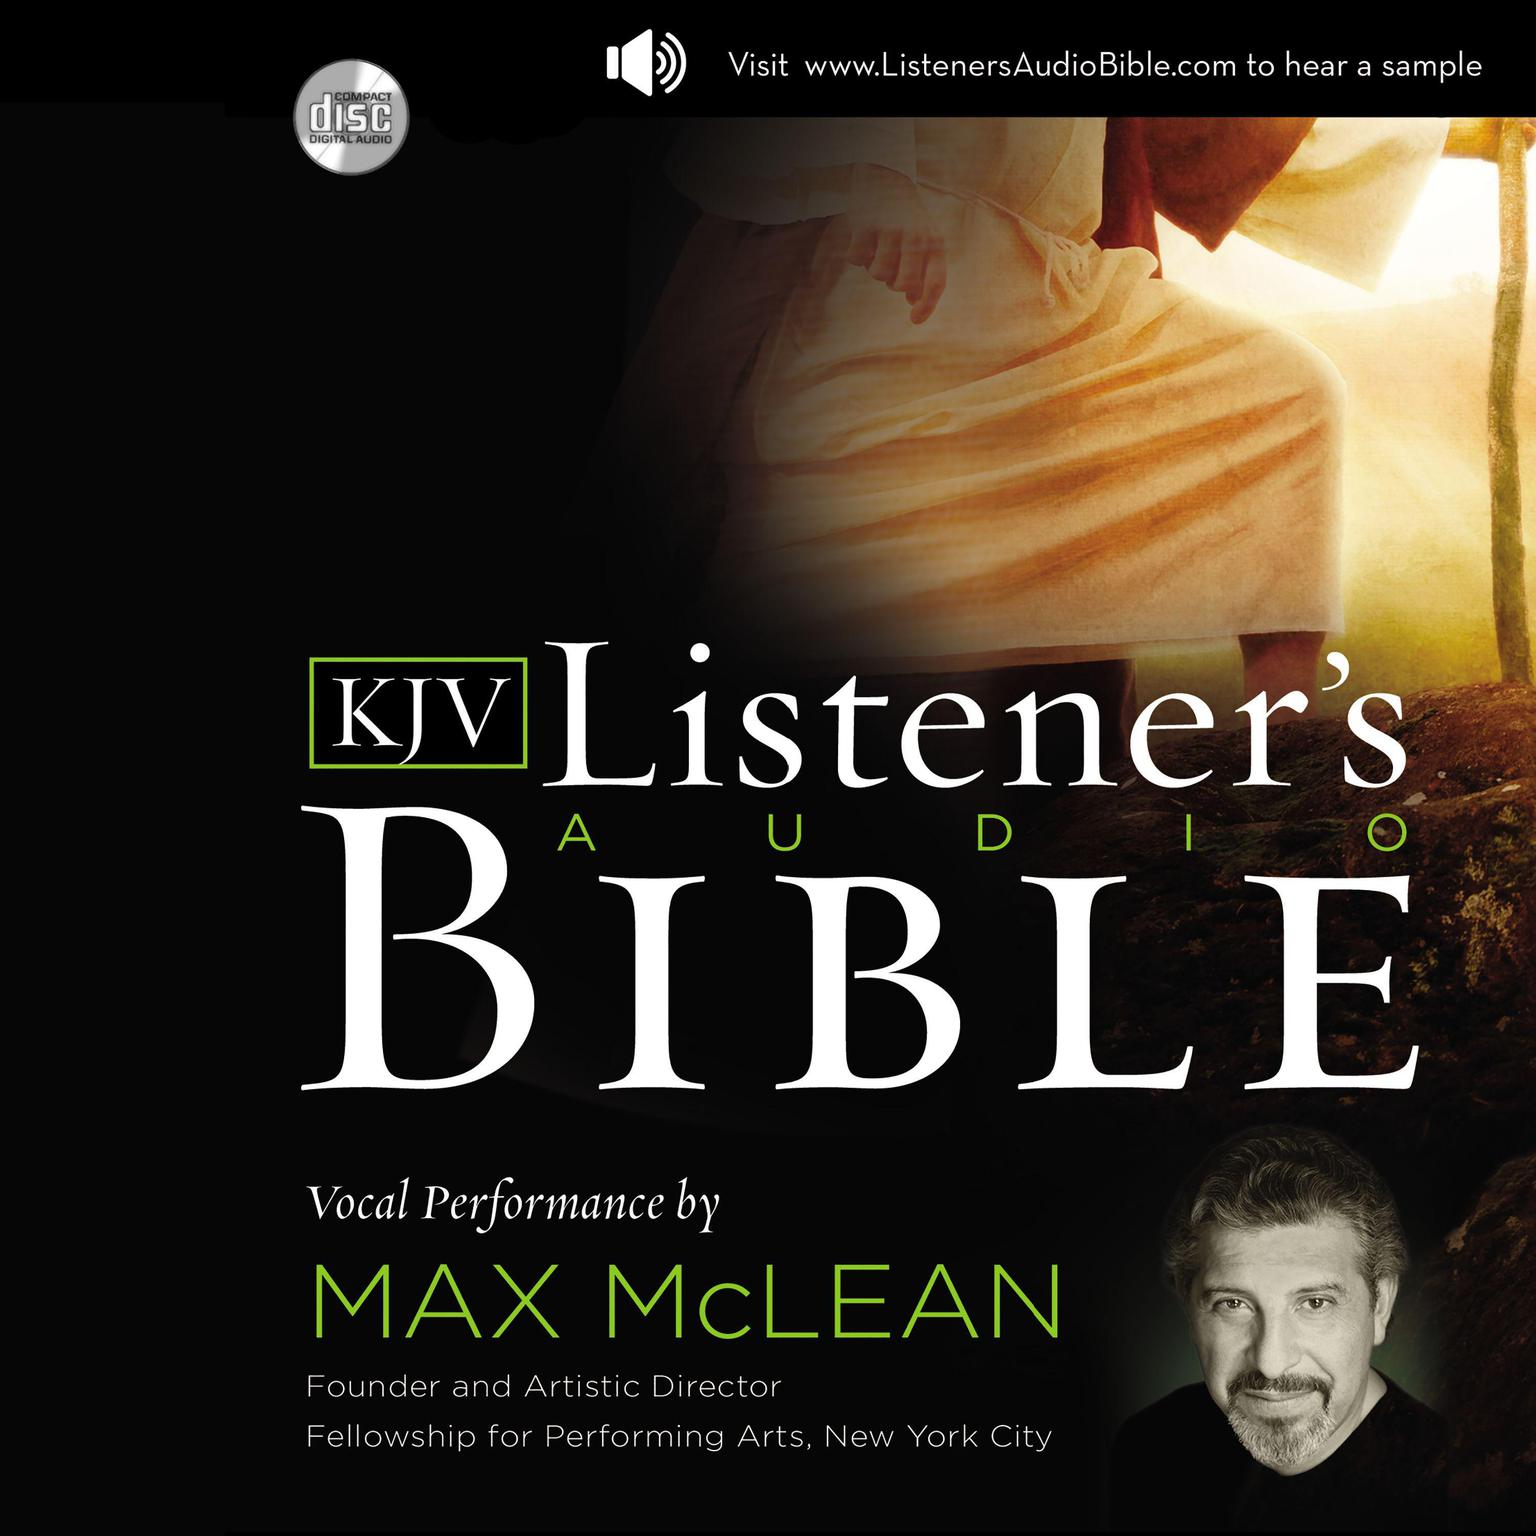 Printable The KJV Listener's Audio Bible: Vocal Performance by Max McLean Audiobook Cover Art